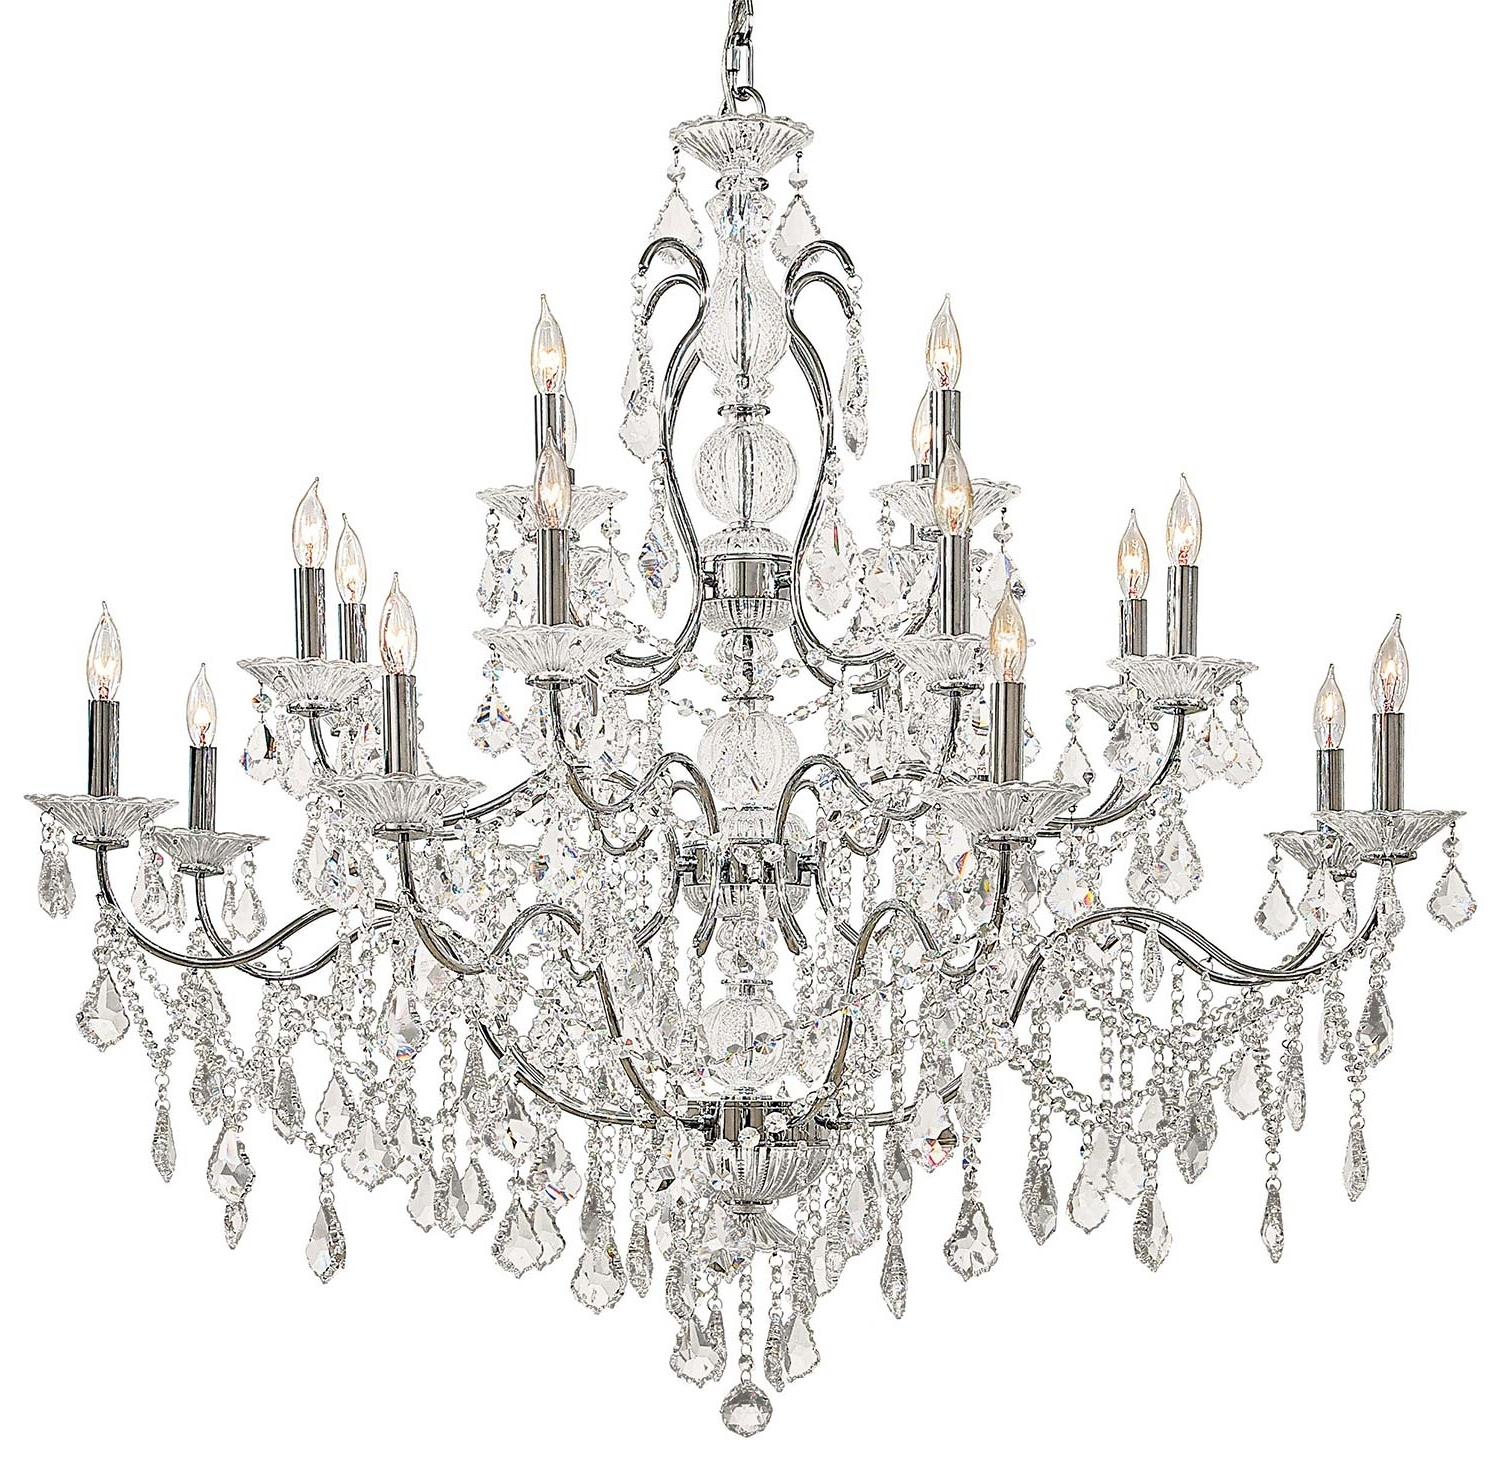 Most Popular Vintage Style Chandeliers Regarding Light : Chandelier Crystals Vintage Php White Dining Crystal Room (View 10 of 20)